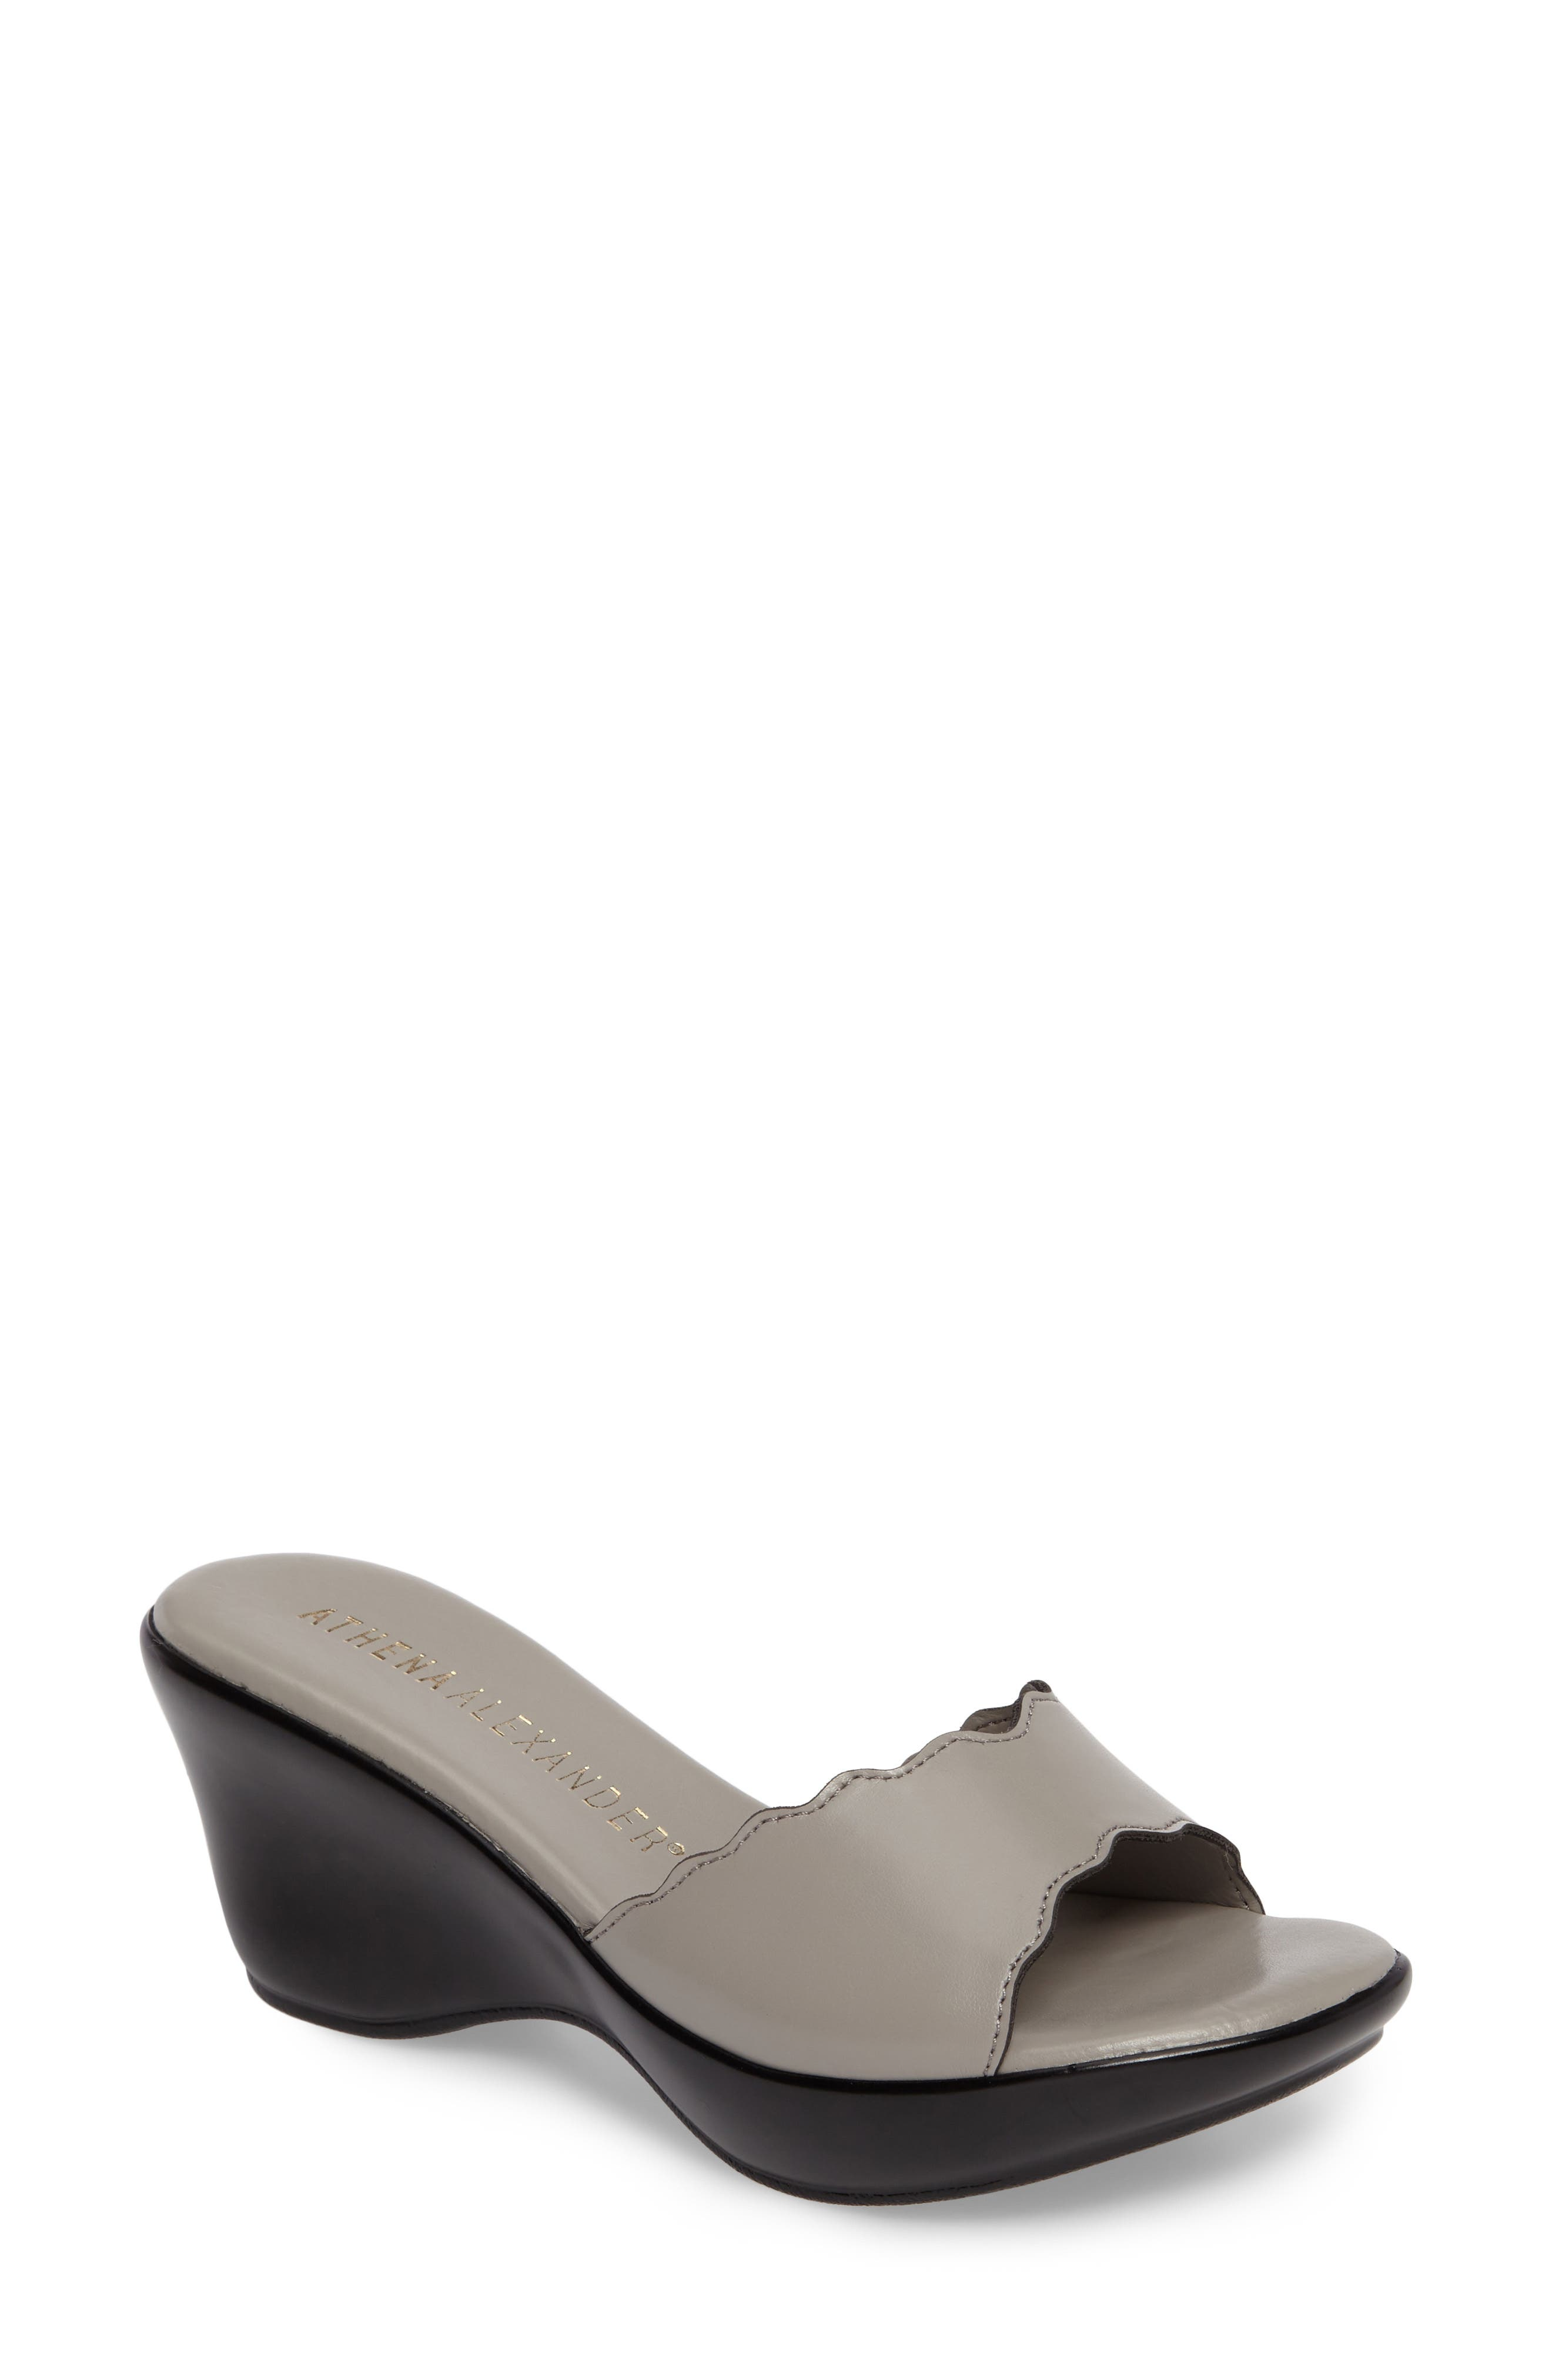 Alternate Image 1 Selected - Athena Alexander Novva Sandal (Women)